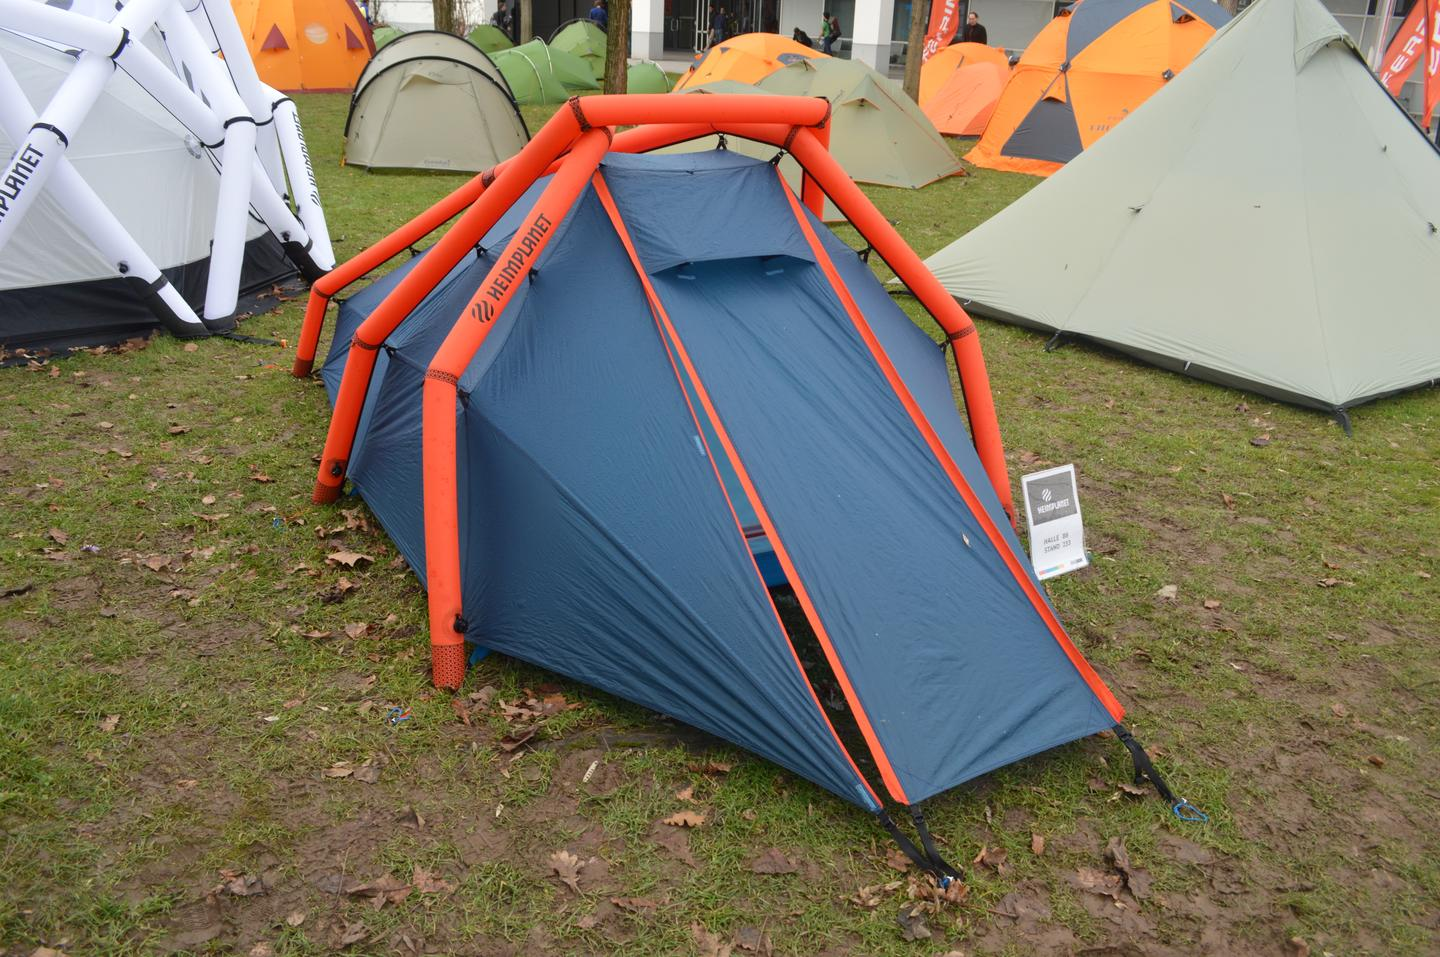 The Wedge is a two-person tent